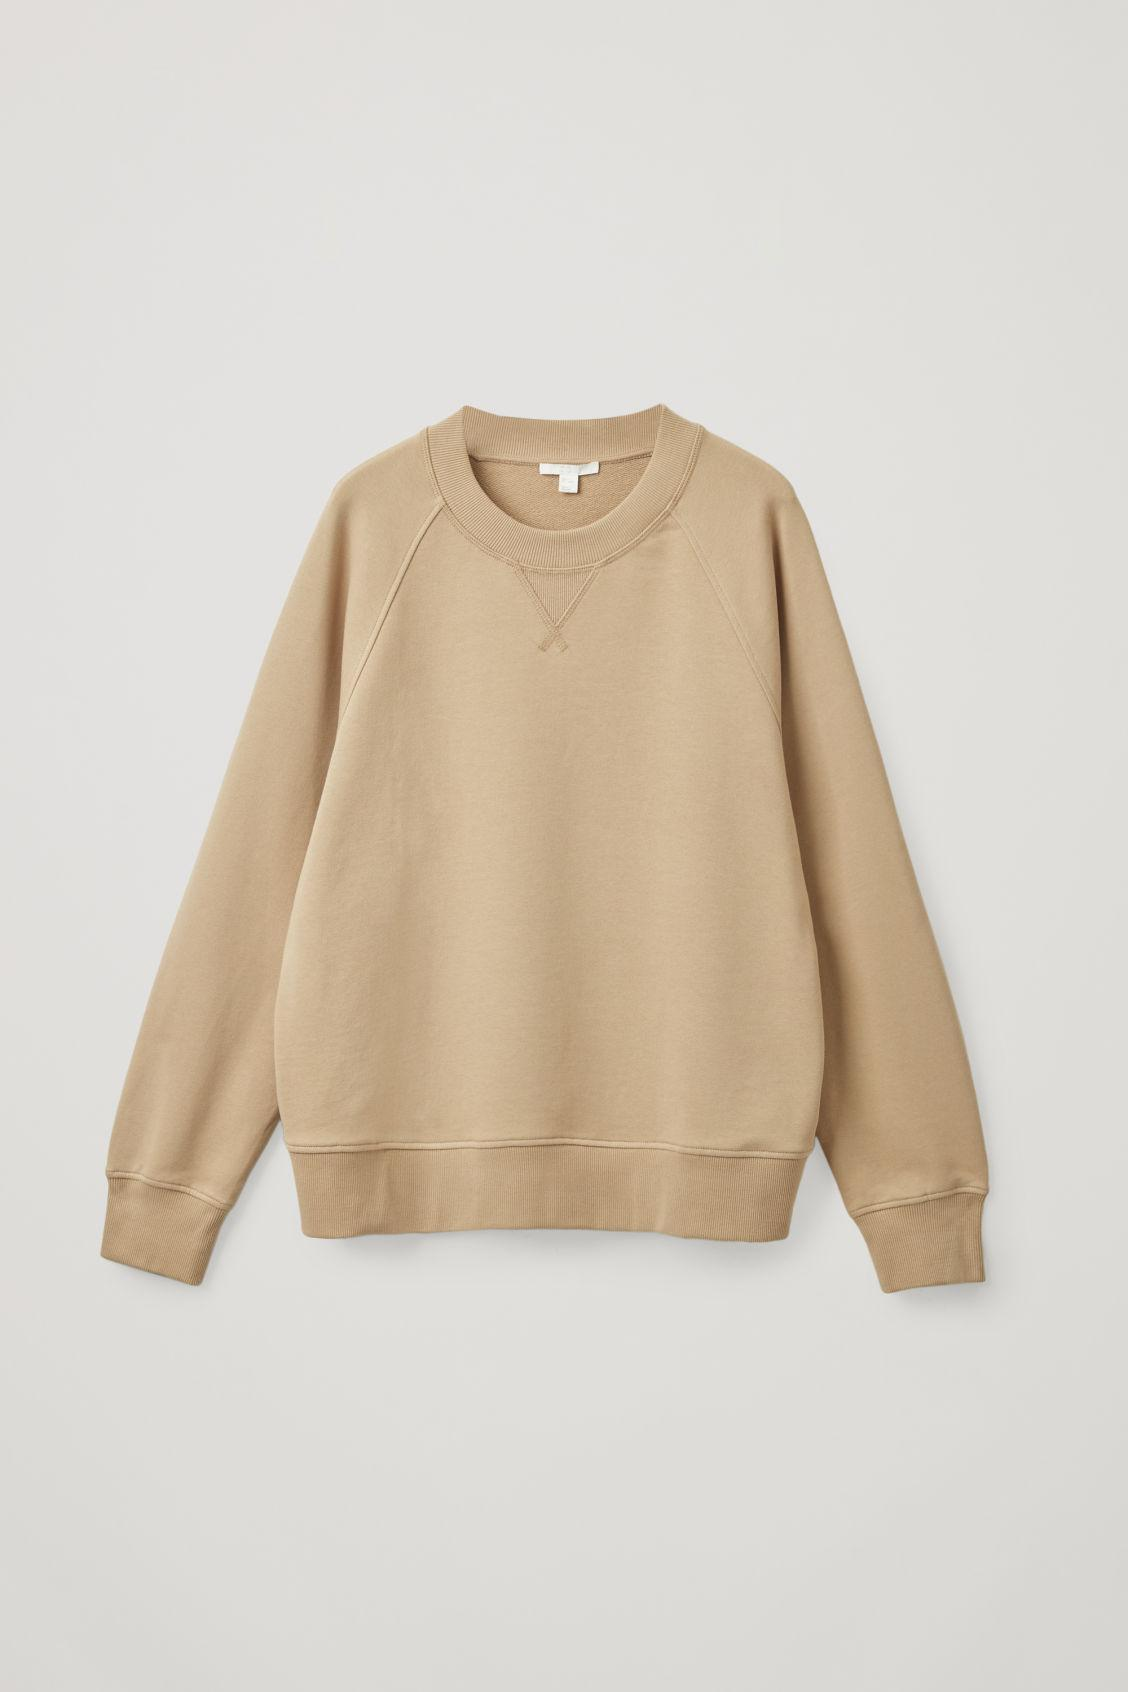 RELAXED-FIT TERRY SWEATSHIRT 6